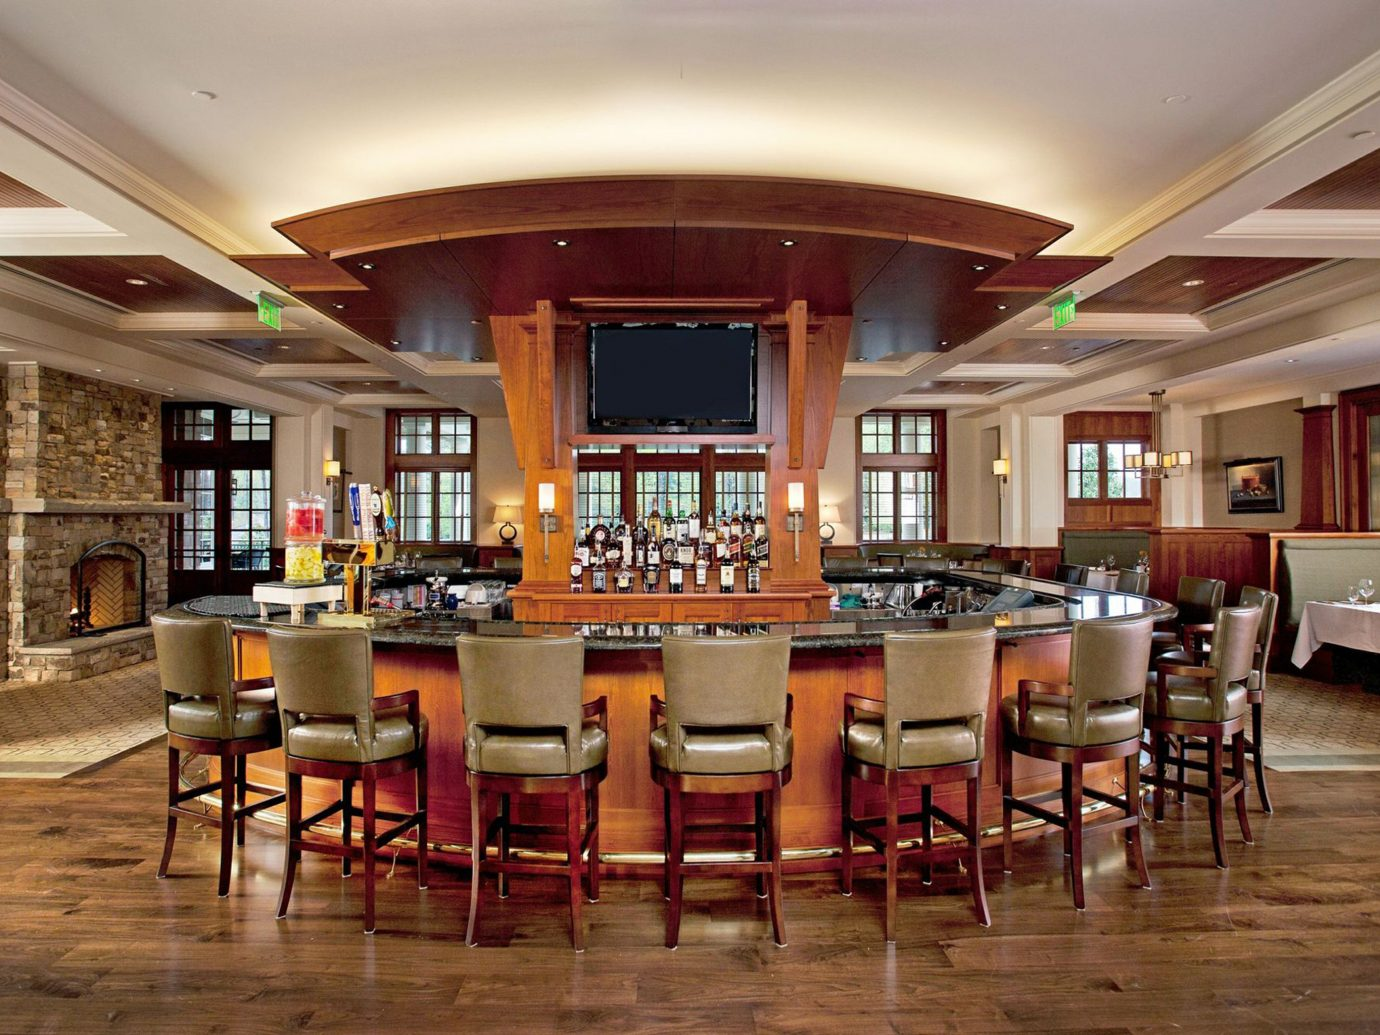 Bar Dining Drink Eat Hip Hotels Lakes + Rivers Luxury Modern Romance indoor floor ceiling table chair room Lobby furniture estate interior design restaurant function hall recreation room cafeteria conference hall dining room real estate café convention center ballroom area several